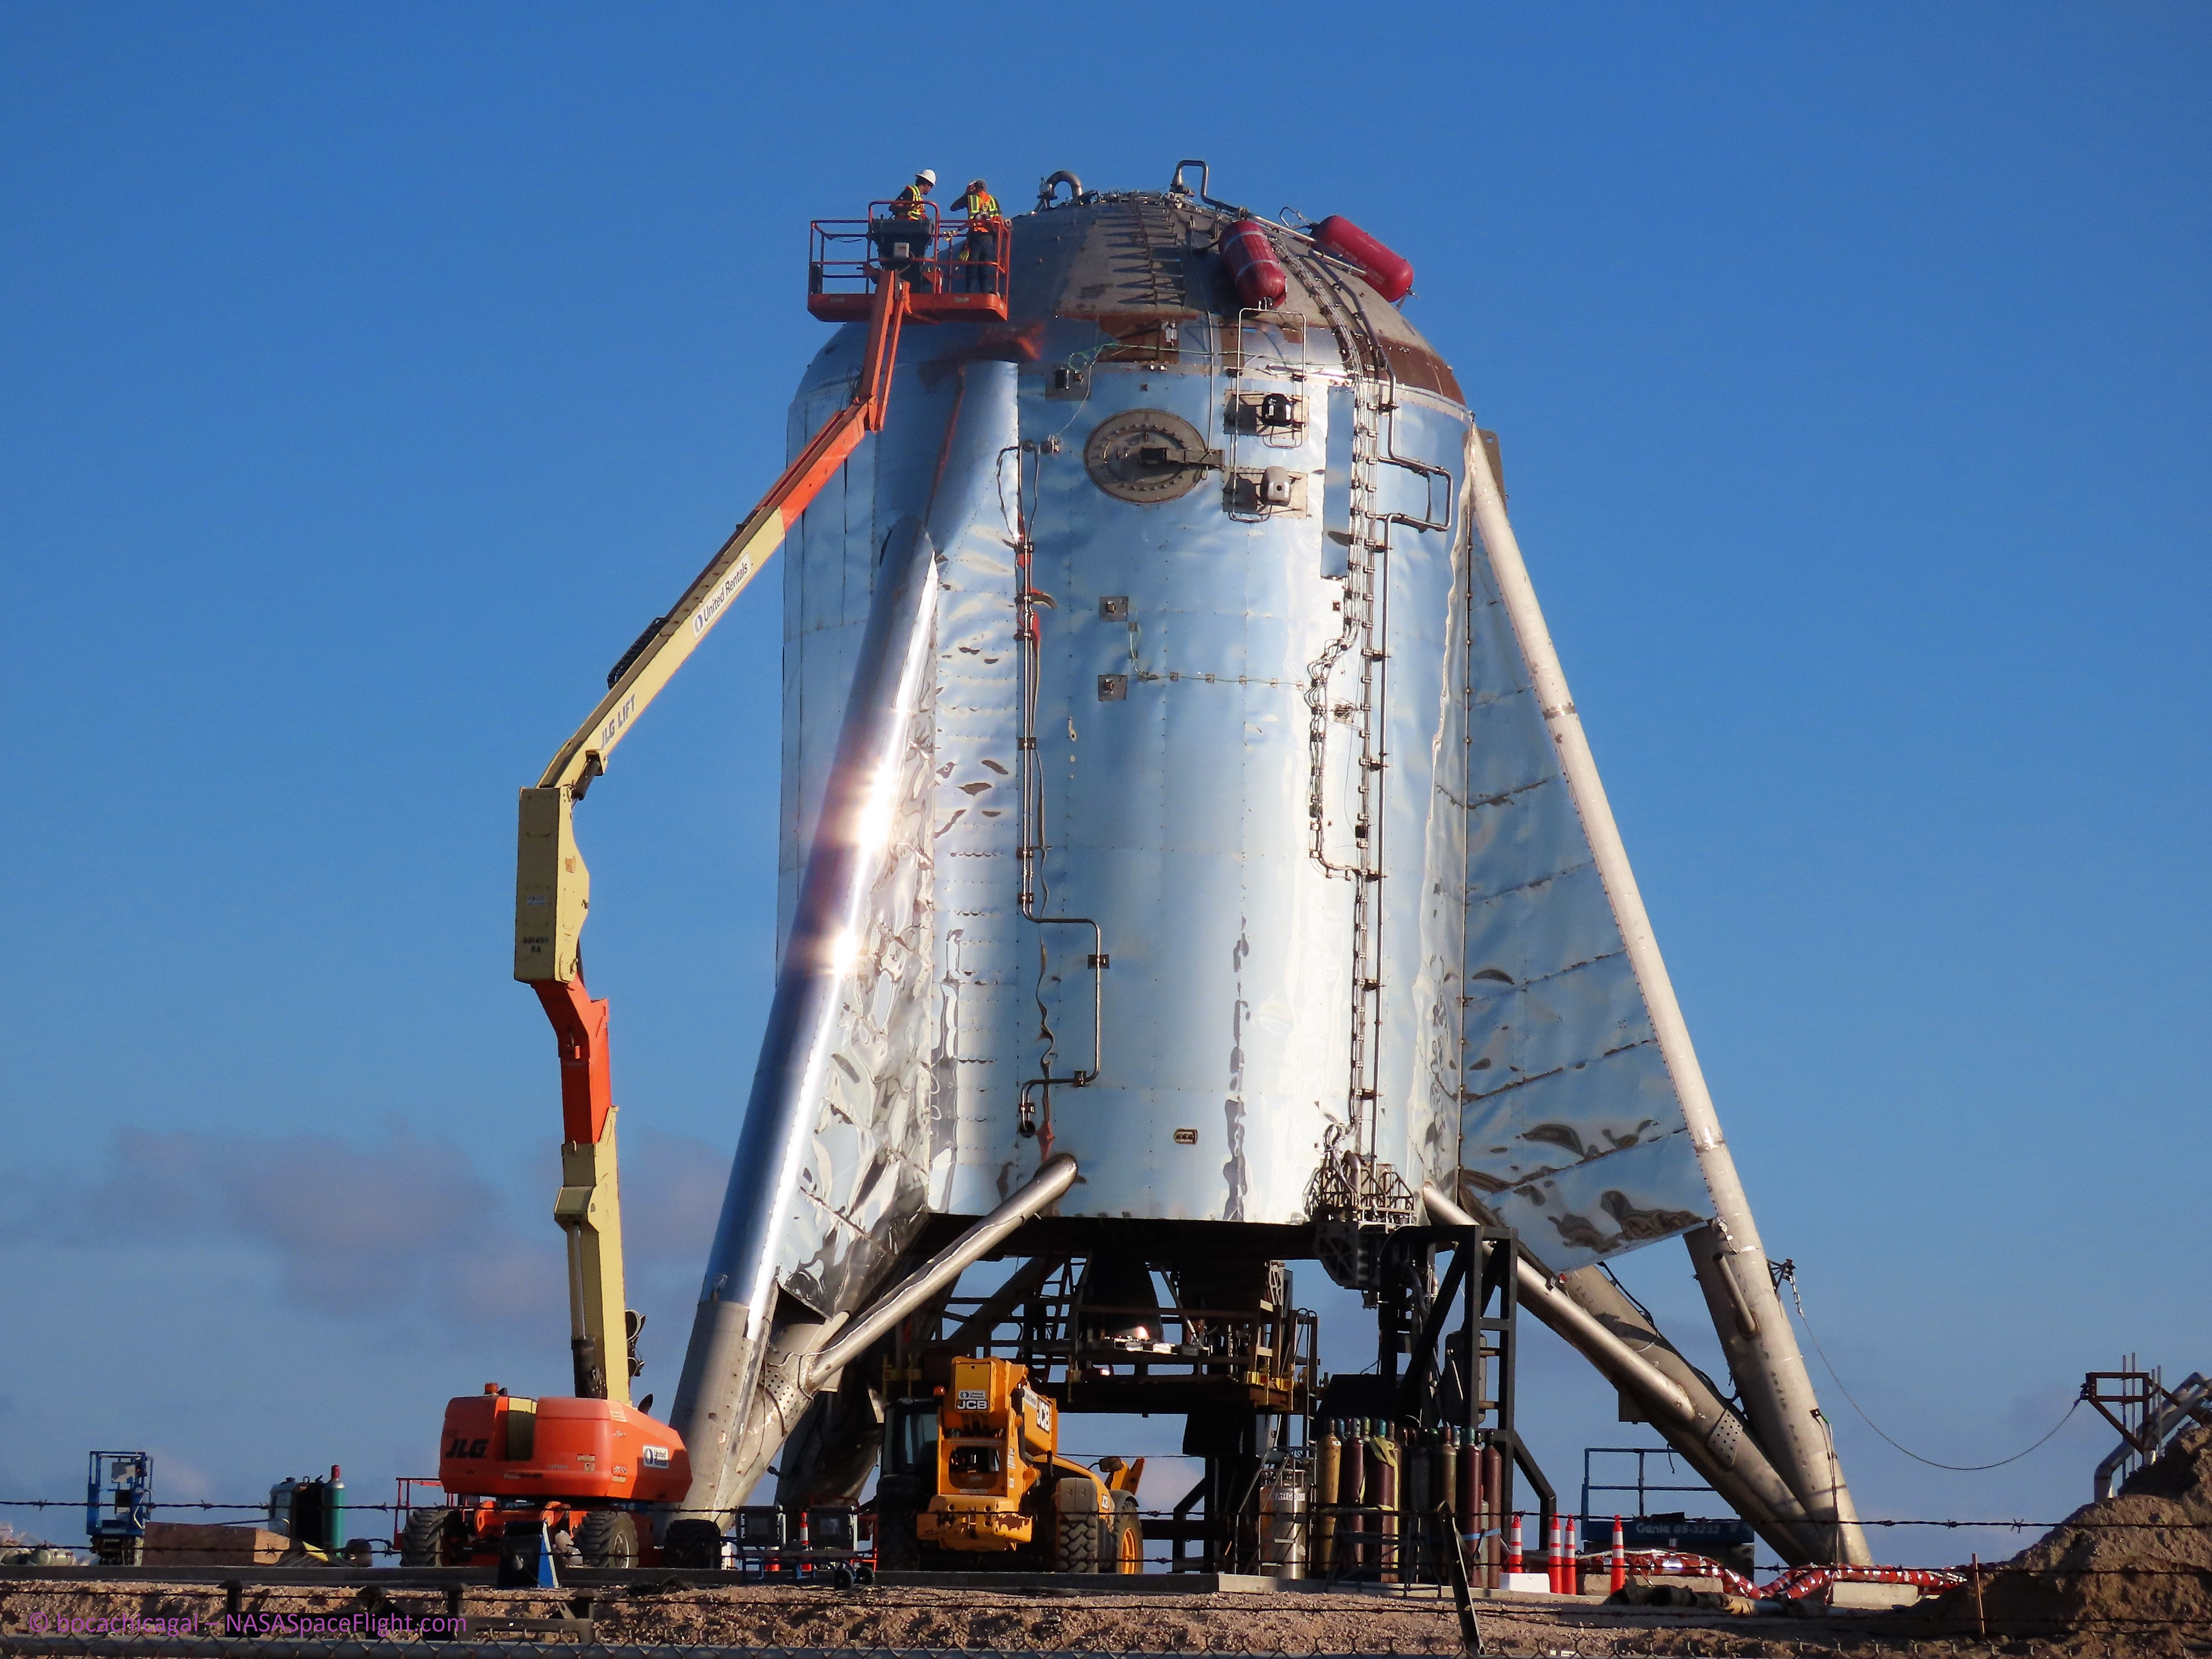 SpaceX readying Starhopper for hops in Texas as Pad 39A